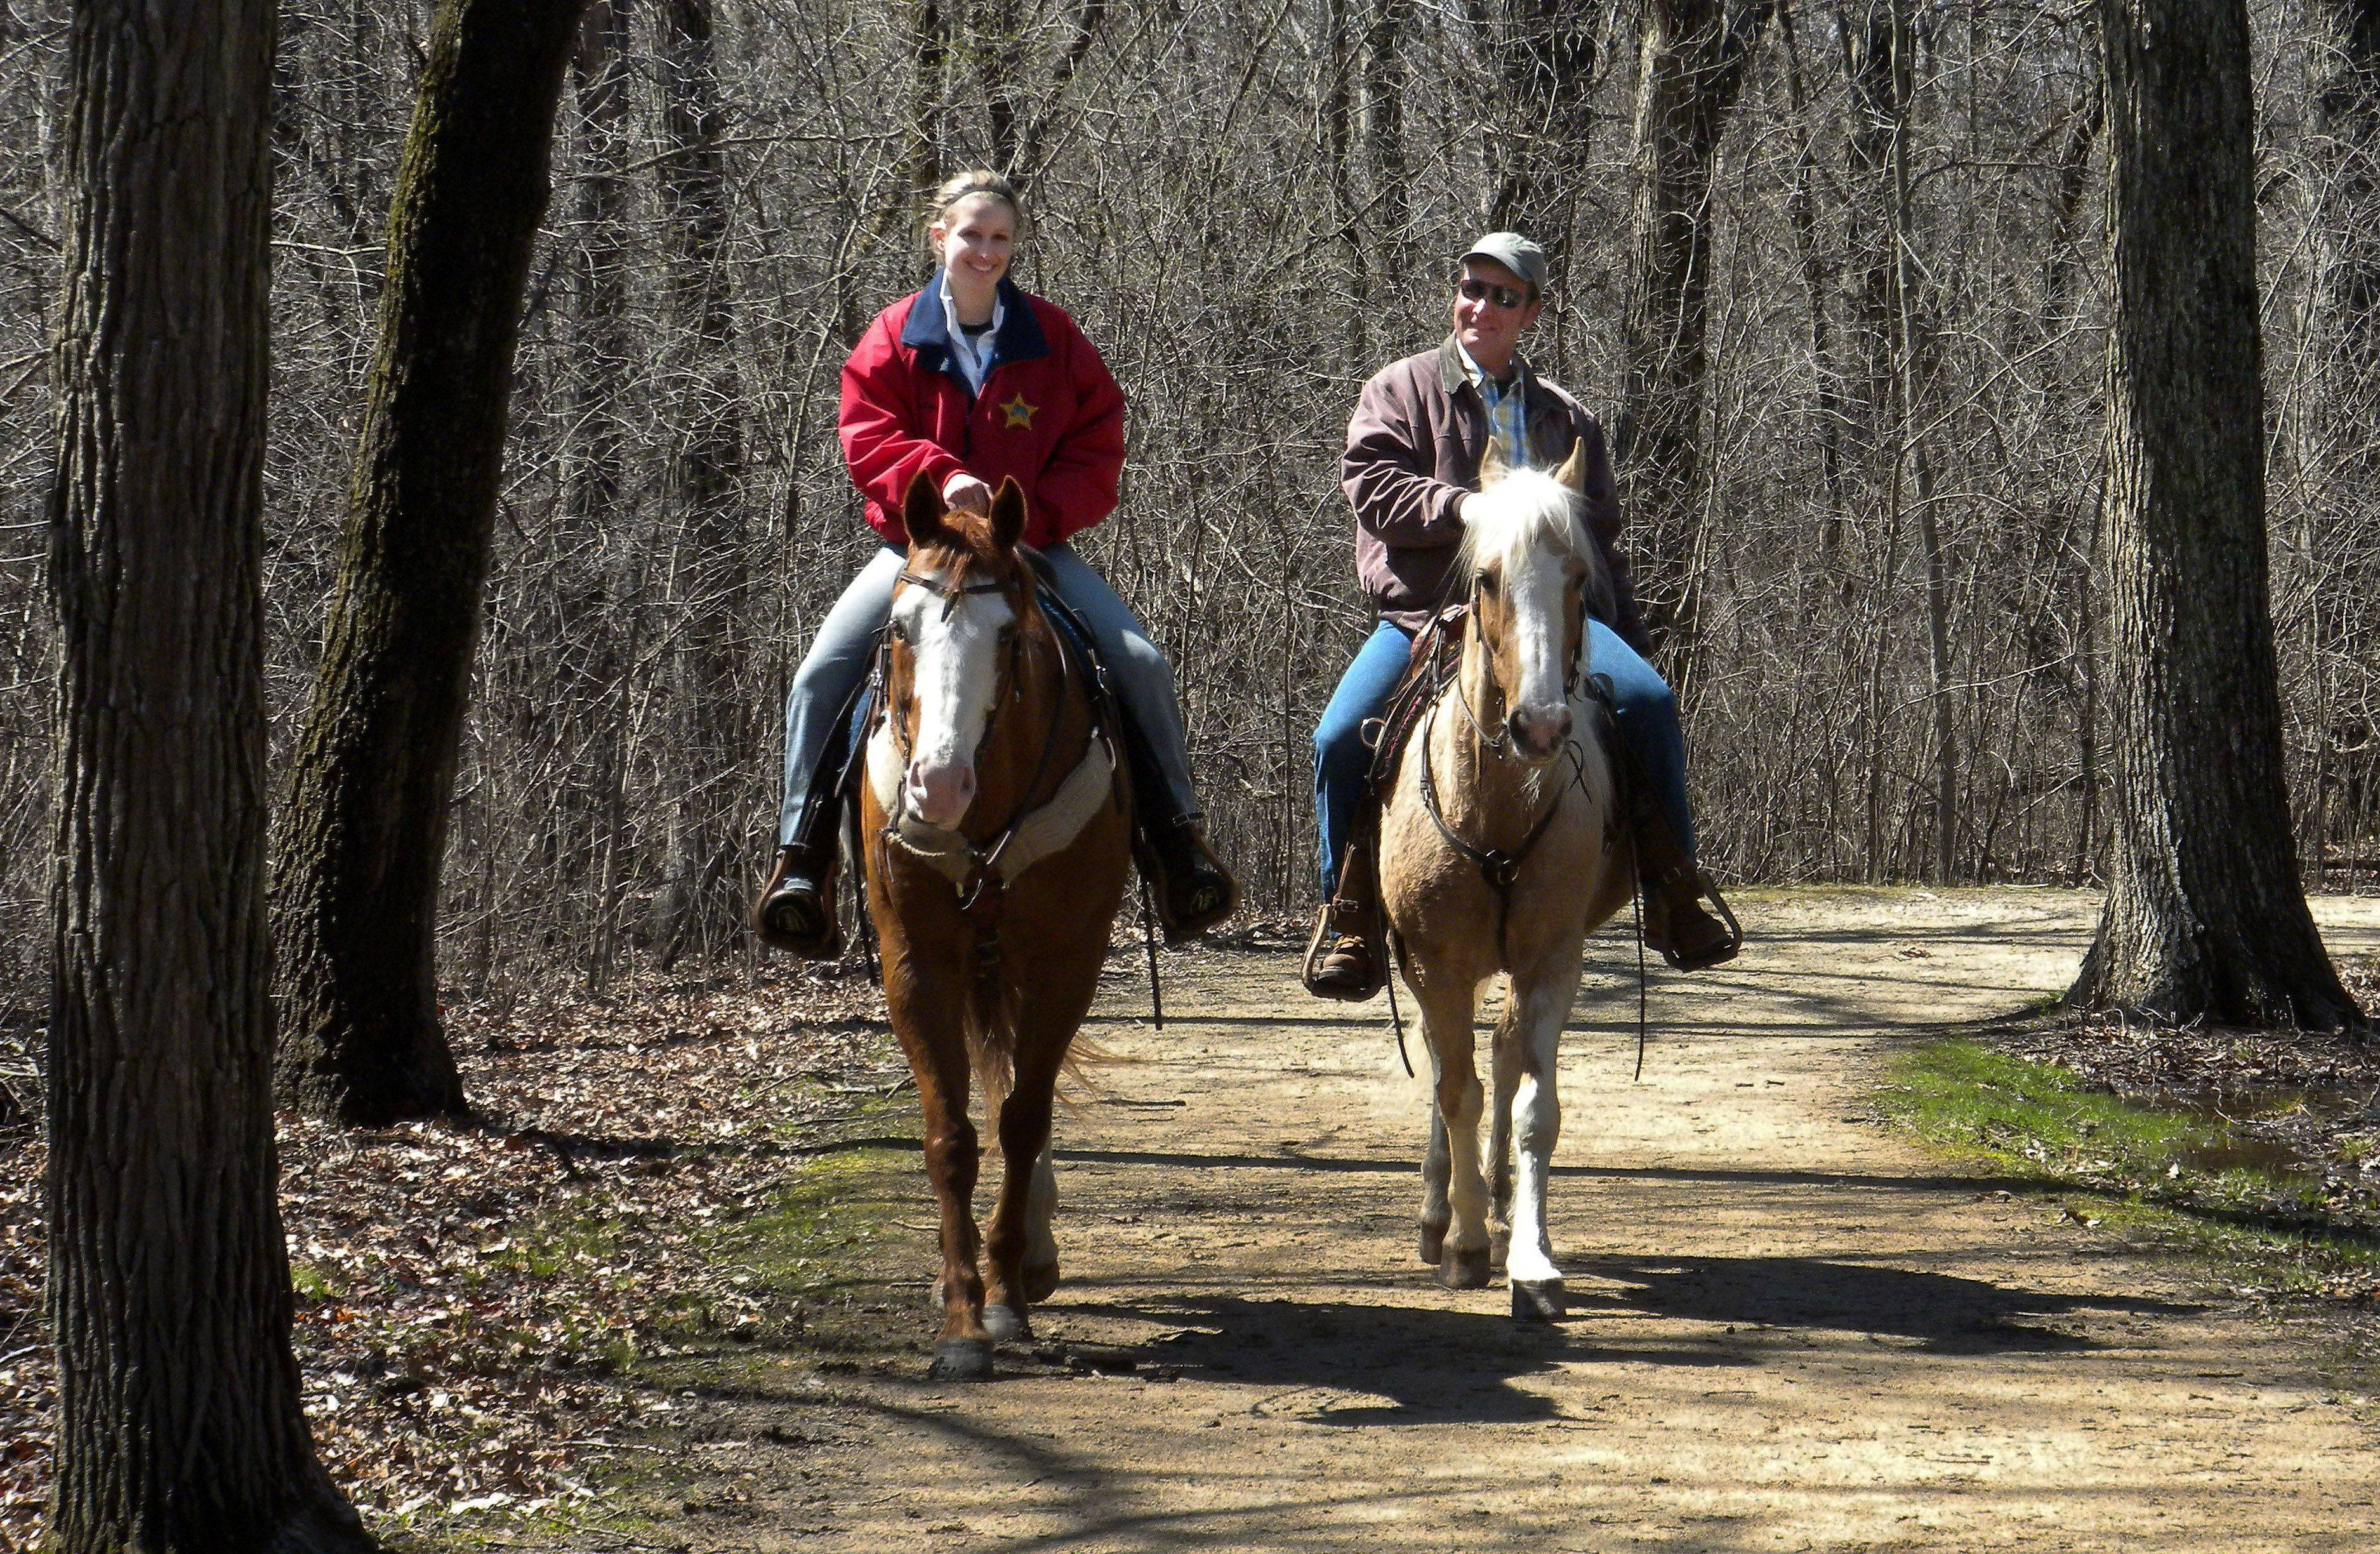 Brittany Wancho, 20, and her father, Don, of Lindenhurst enjoy a morning ride with the Lake County Mounted Posse over the weekend at Old School Forest Preserve near Libertyville. The Posse is a horse club based in Lake County with members from northeastern Illinois and southeastern Wisconsin who participate in monthly rides.